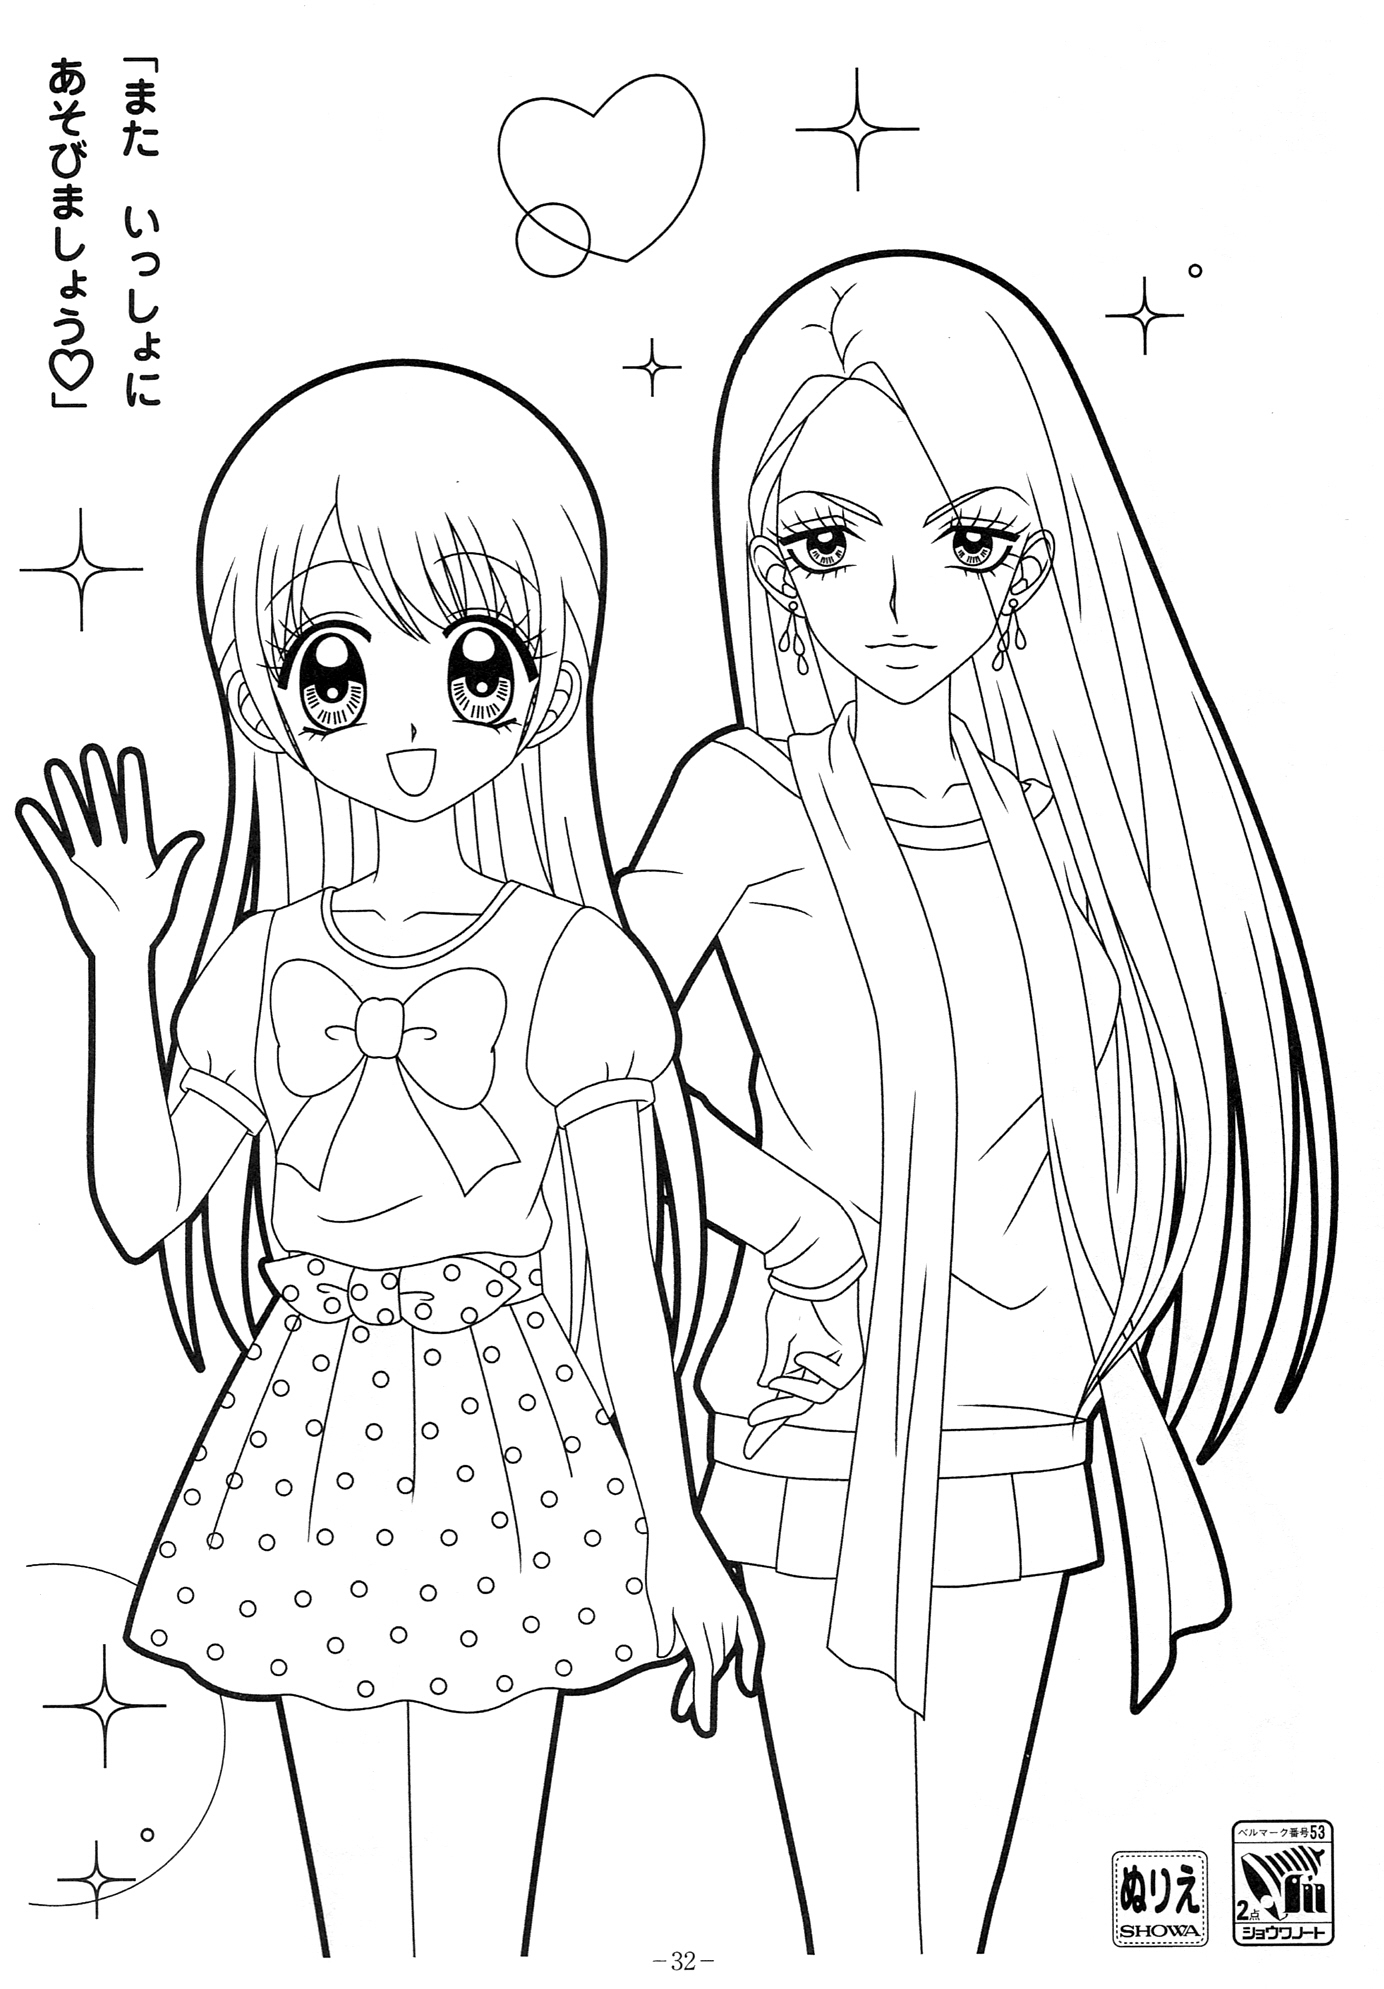 Manga Anime Coloring Pages